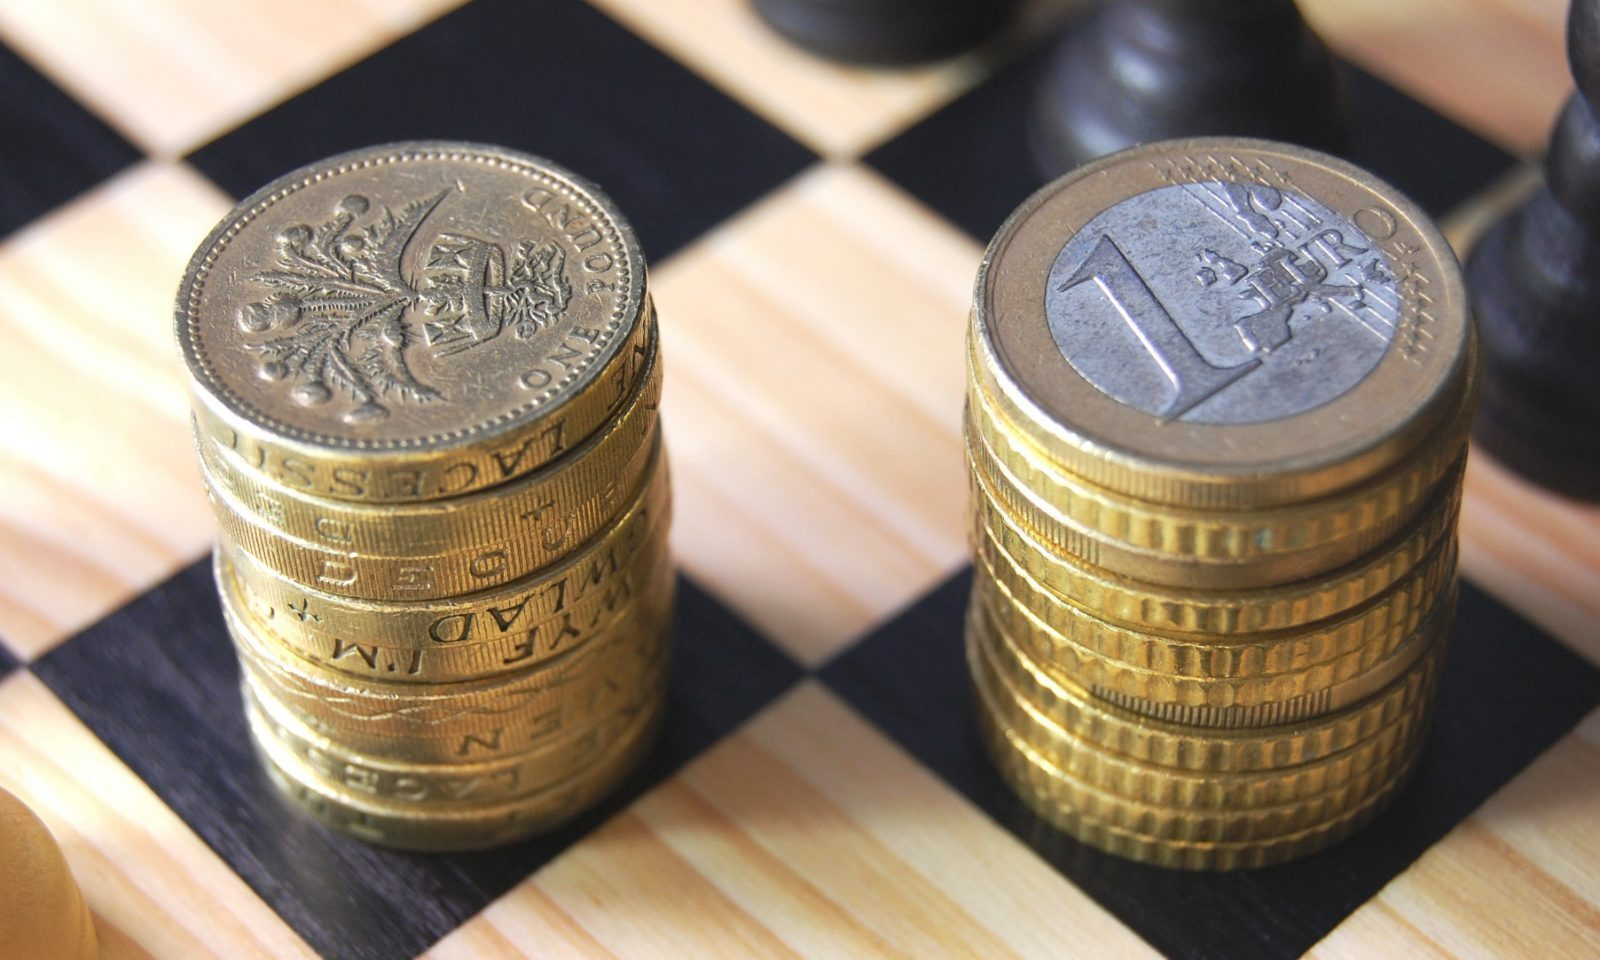 Increasing chances of worst-case Brexit scenario weighing on sterling